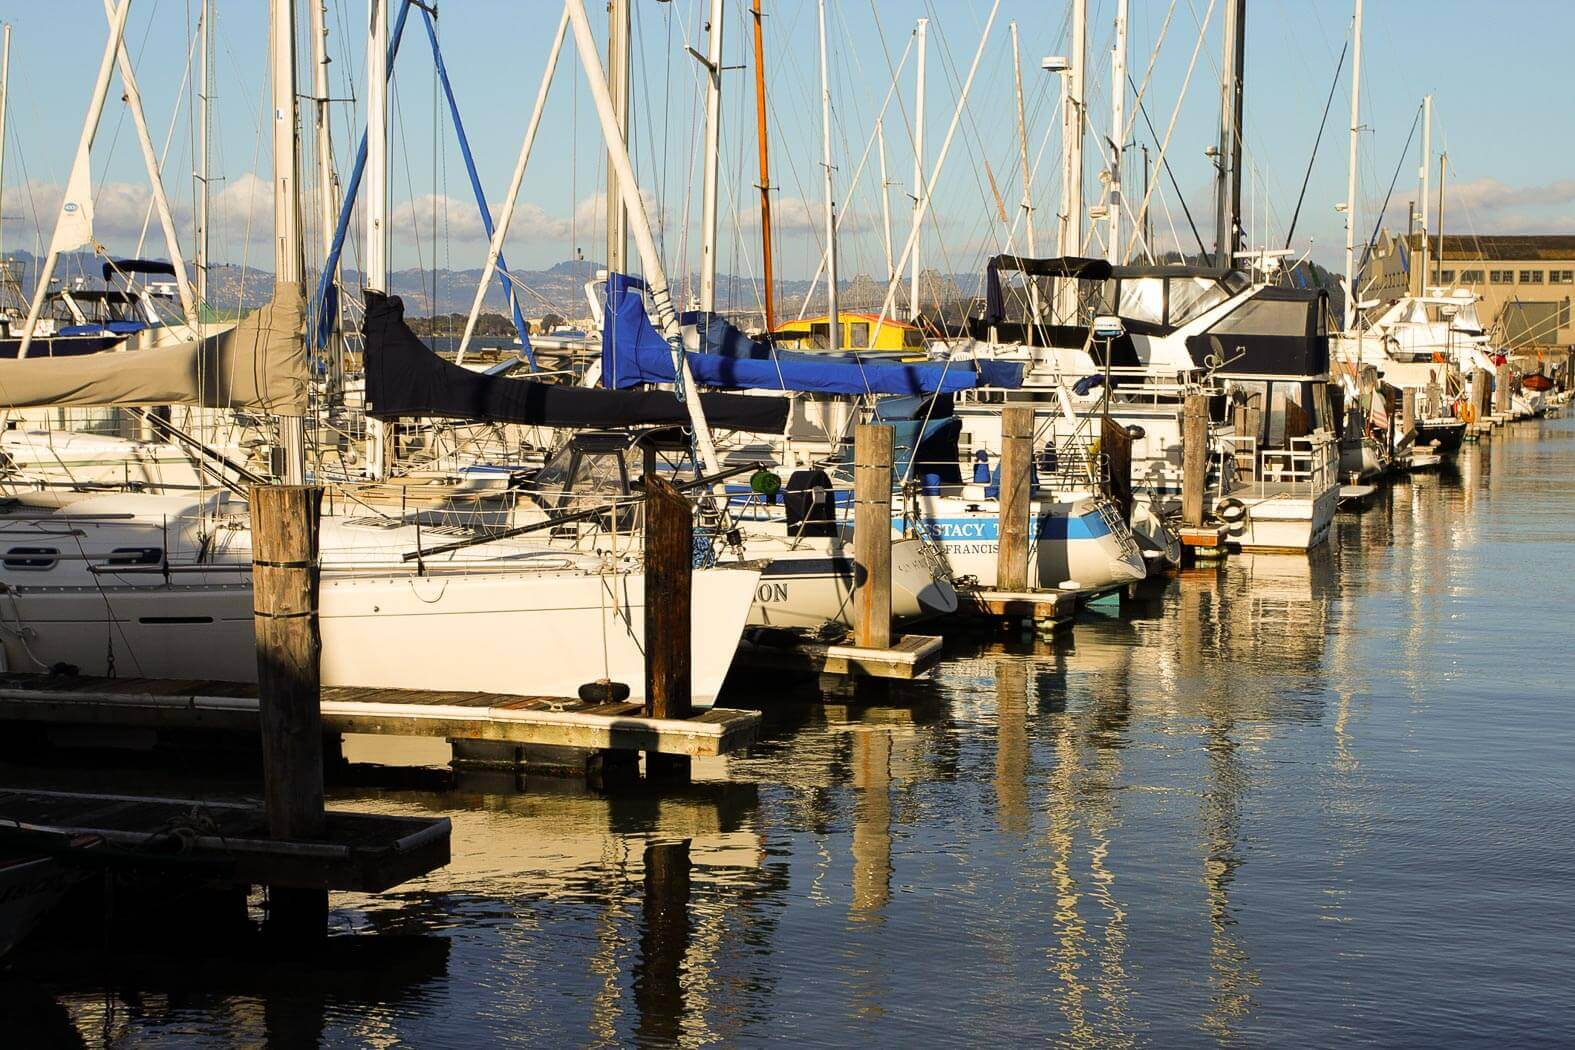 A marina with docked sailboats and calm water